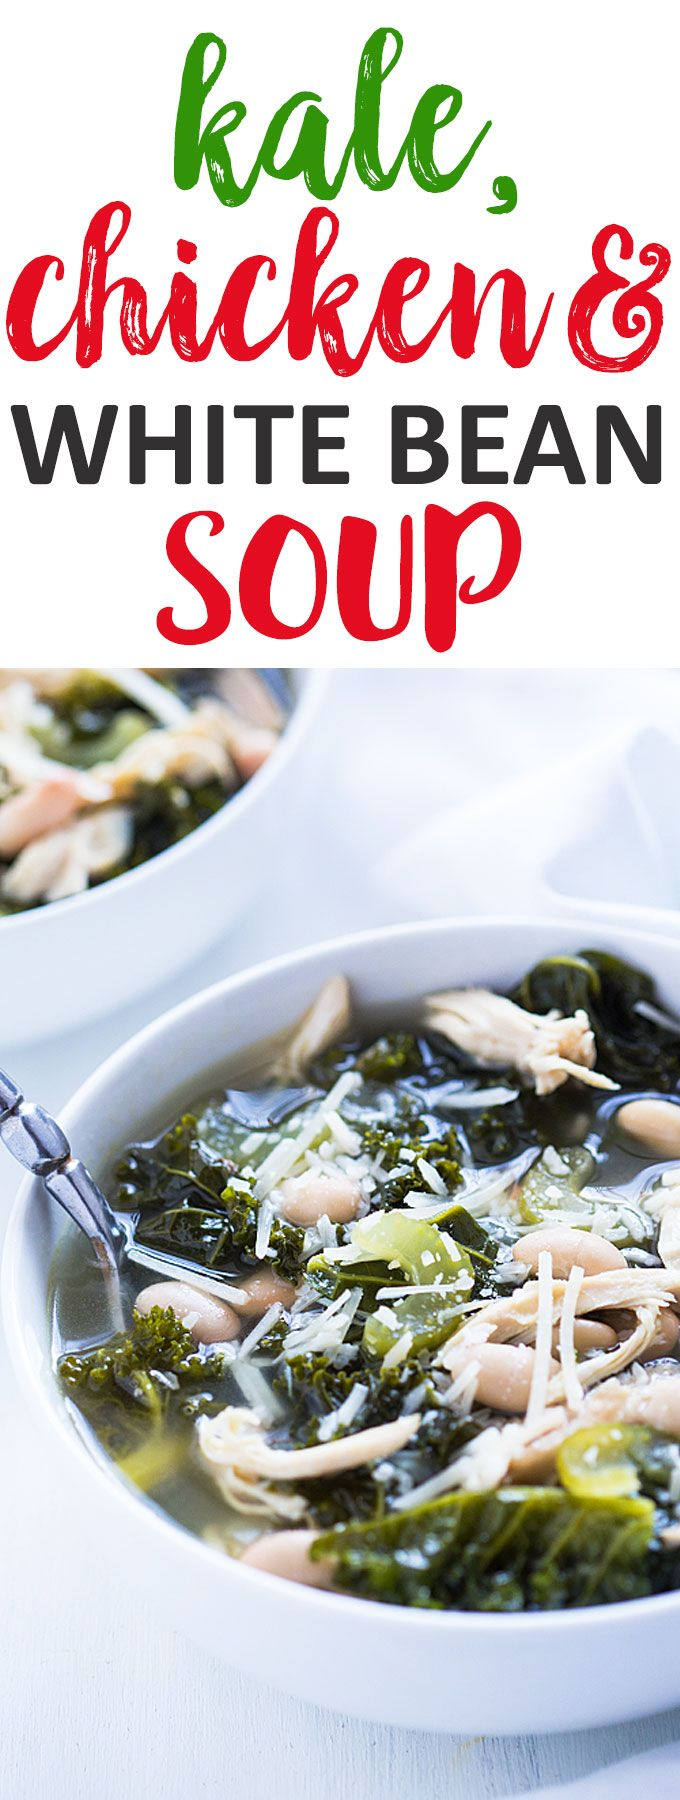 Kale, Chicken and White Bean Soup - A healthy and comforting cold ...